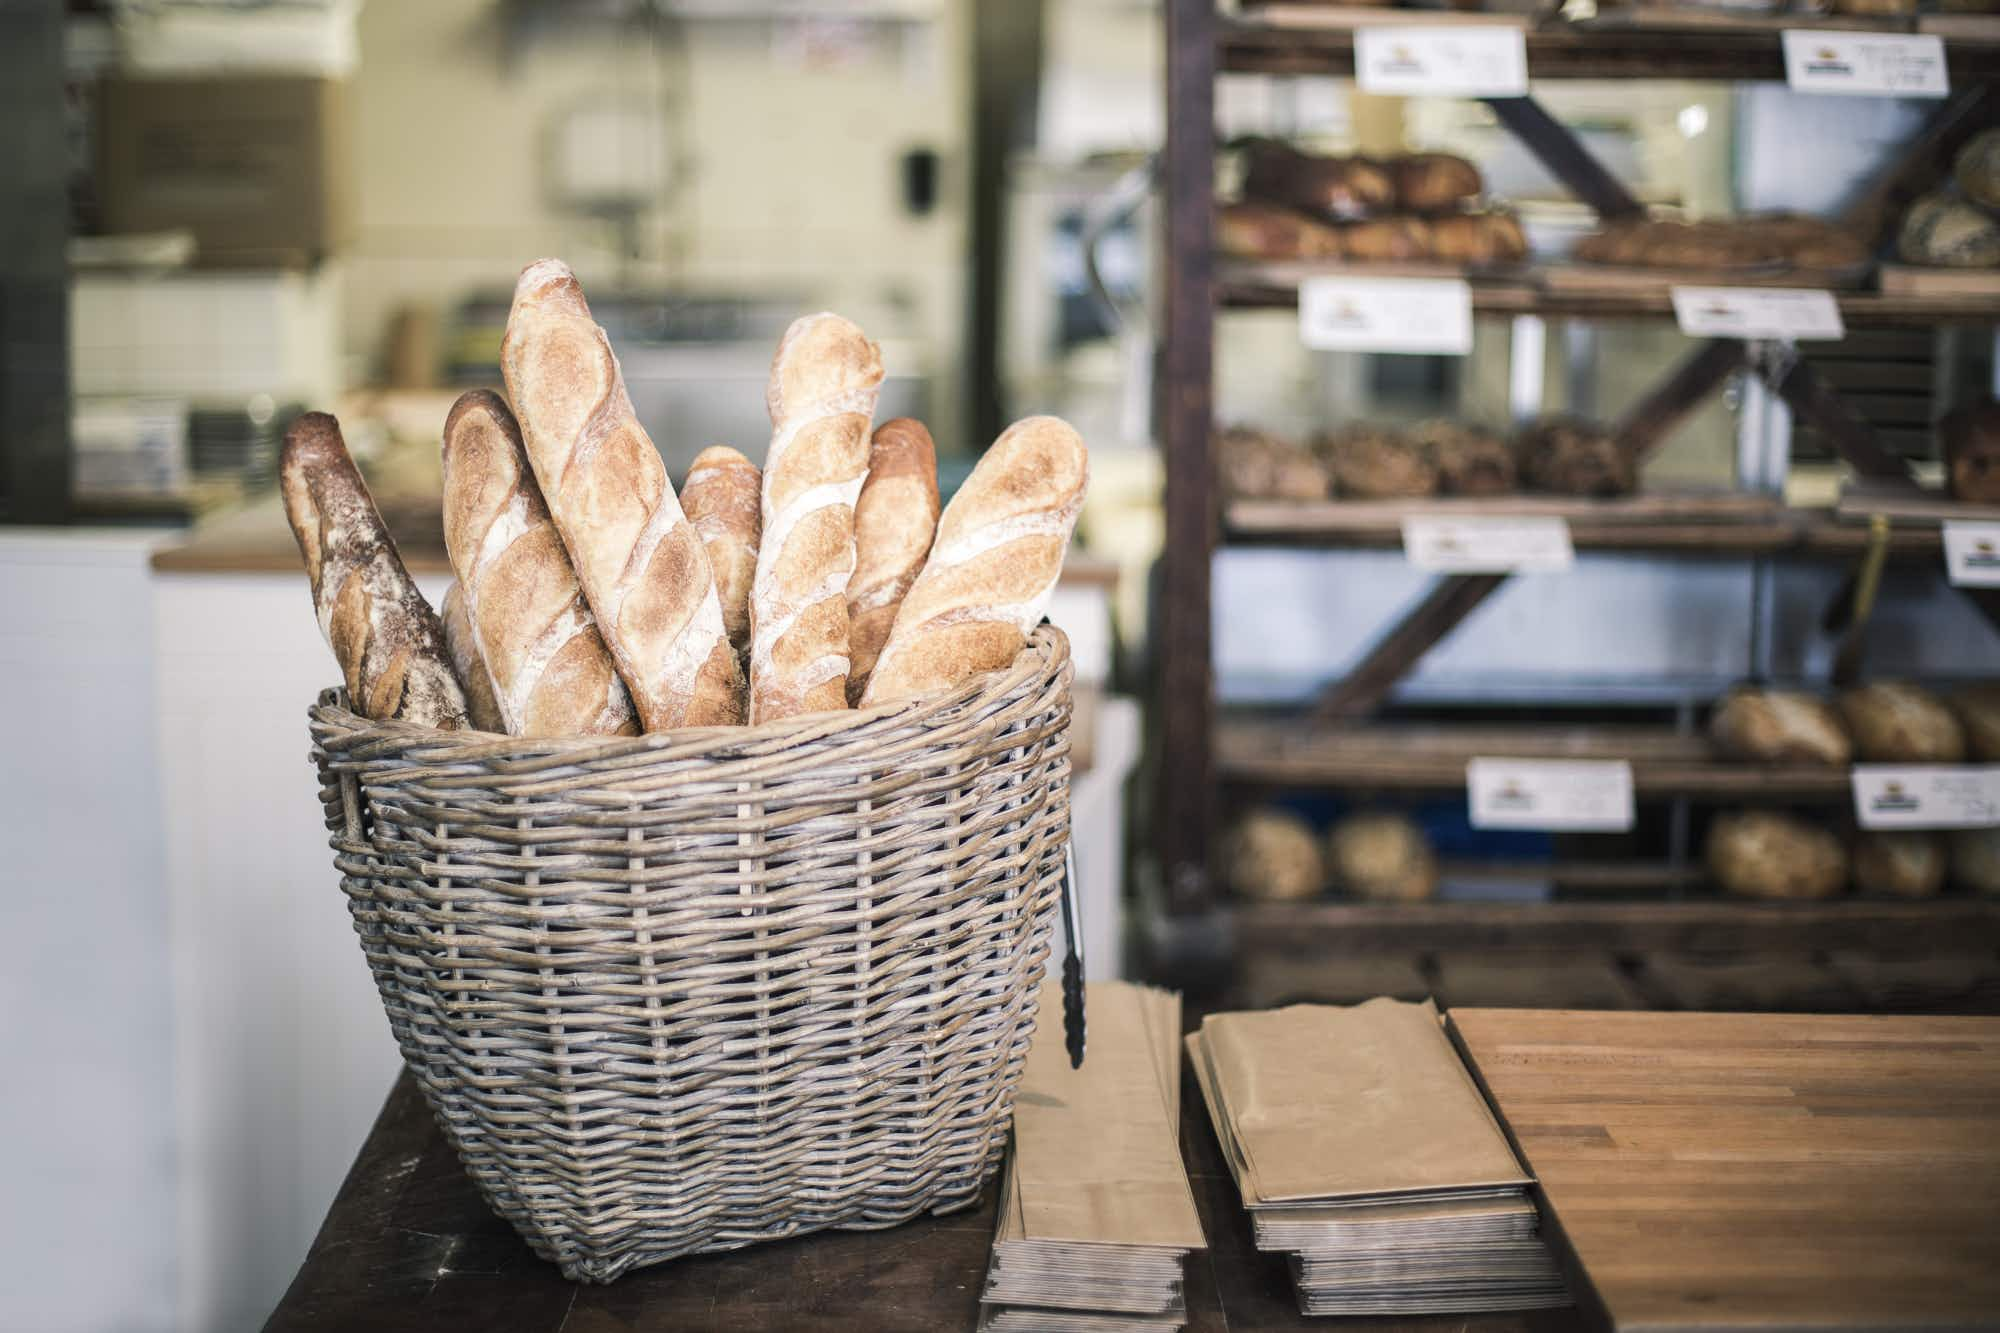 The baguette should be given Unesco heritage status, says French president